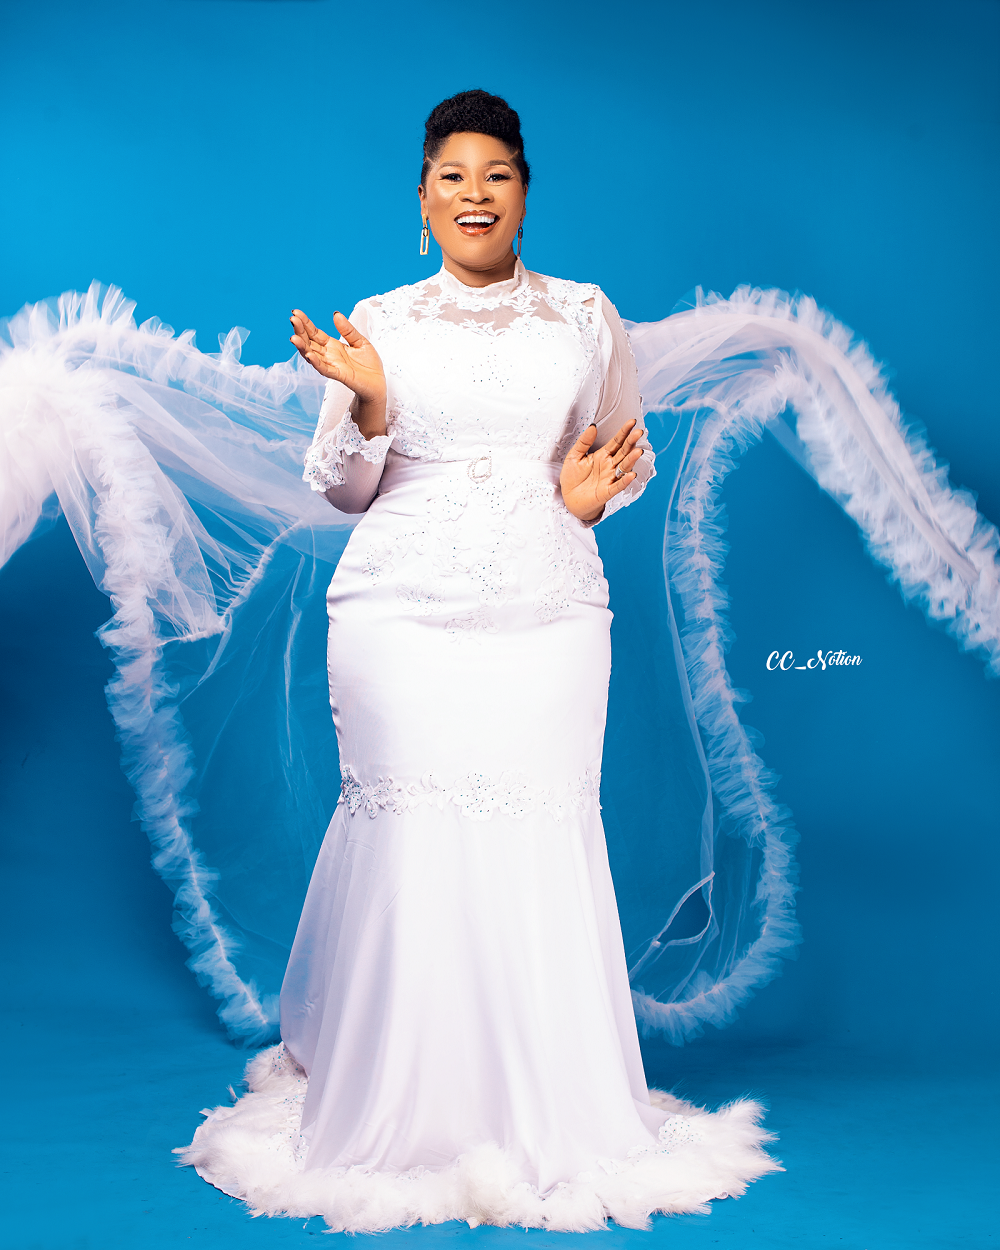 10 Things You Need To Know About Pastor Moji Alawiye (PMA)